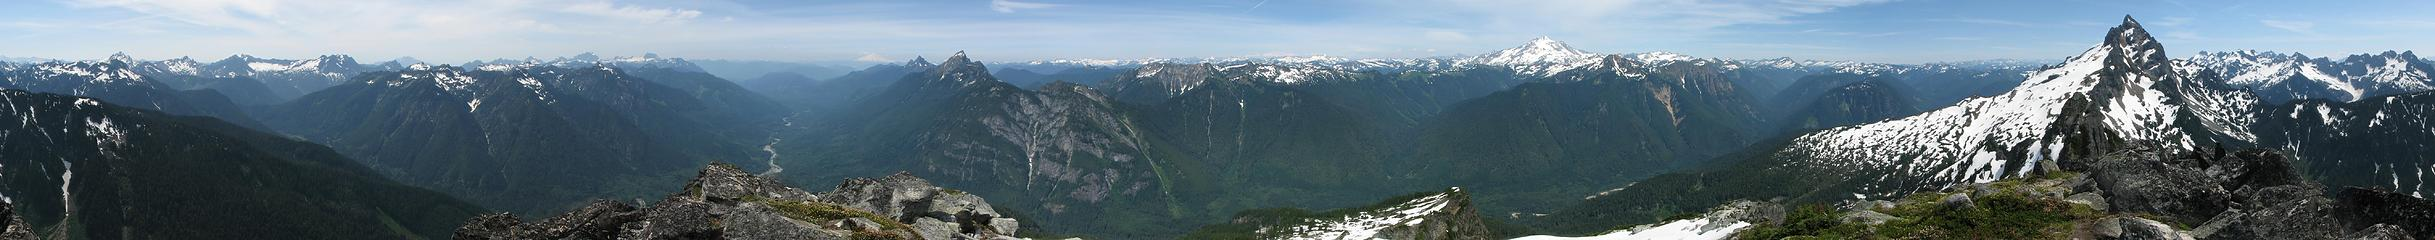 Bedal 360 summit pano